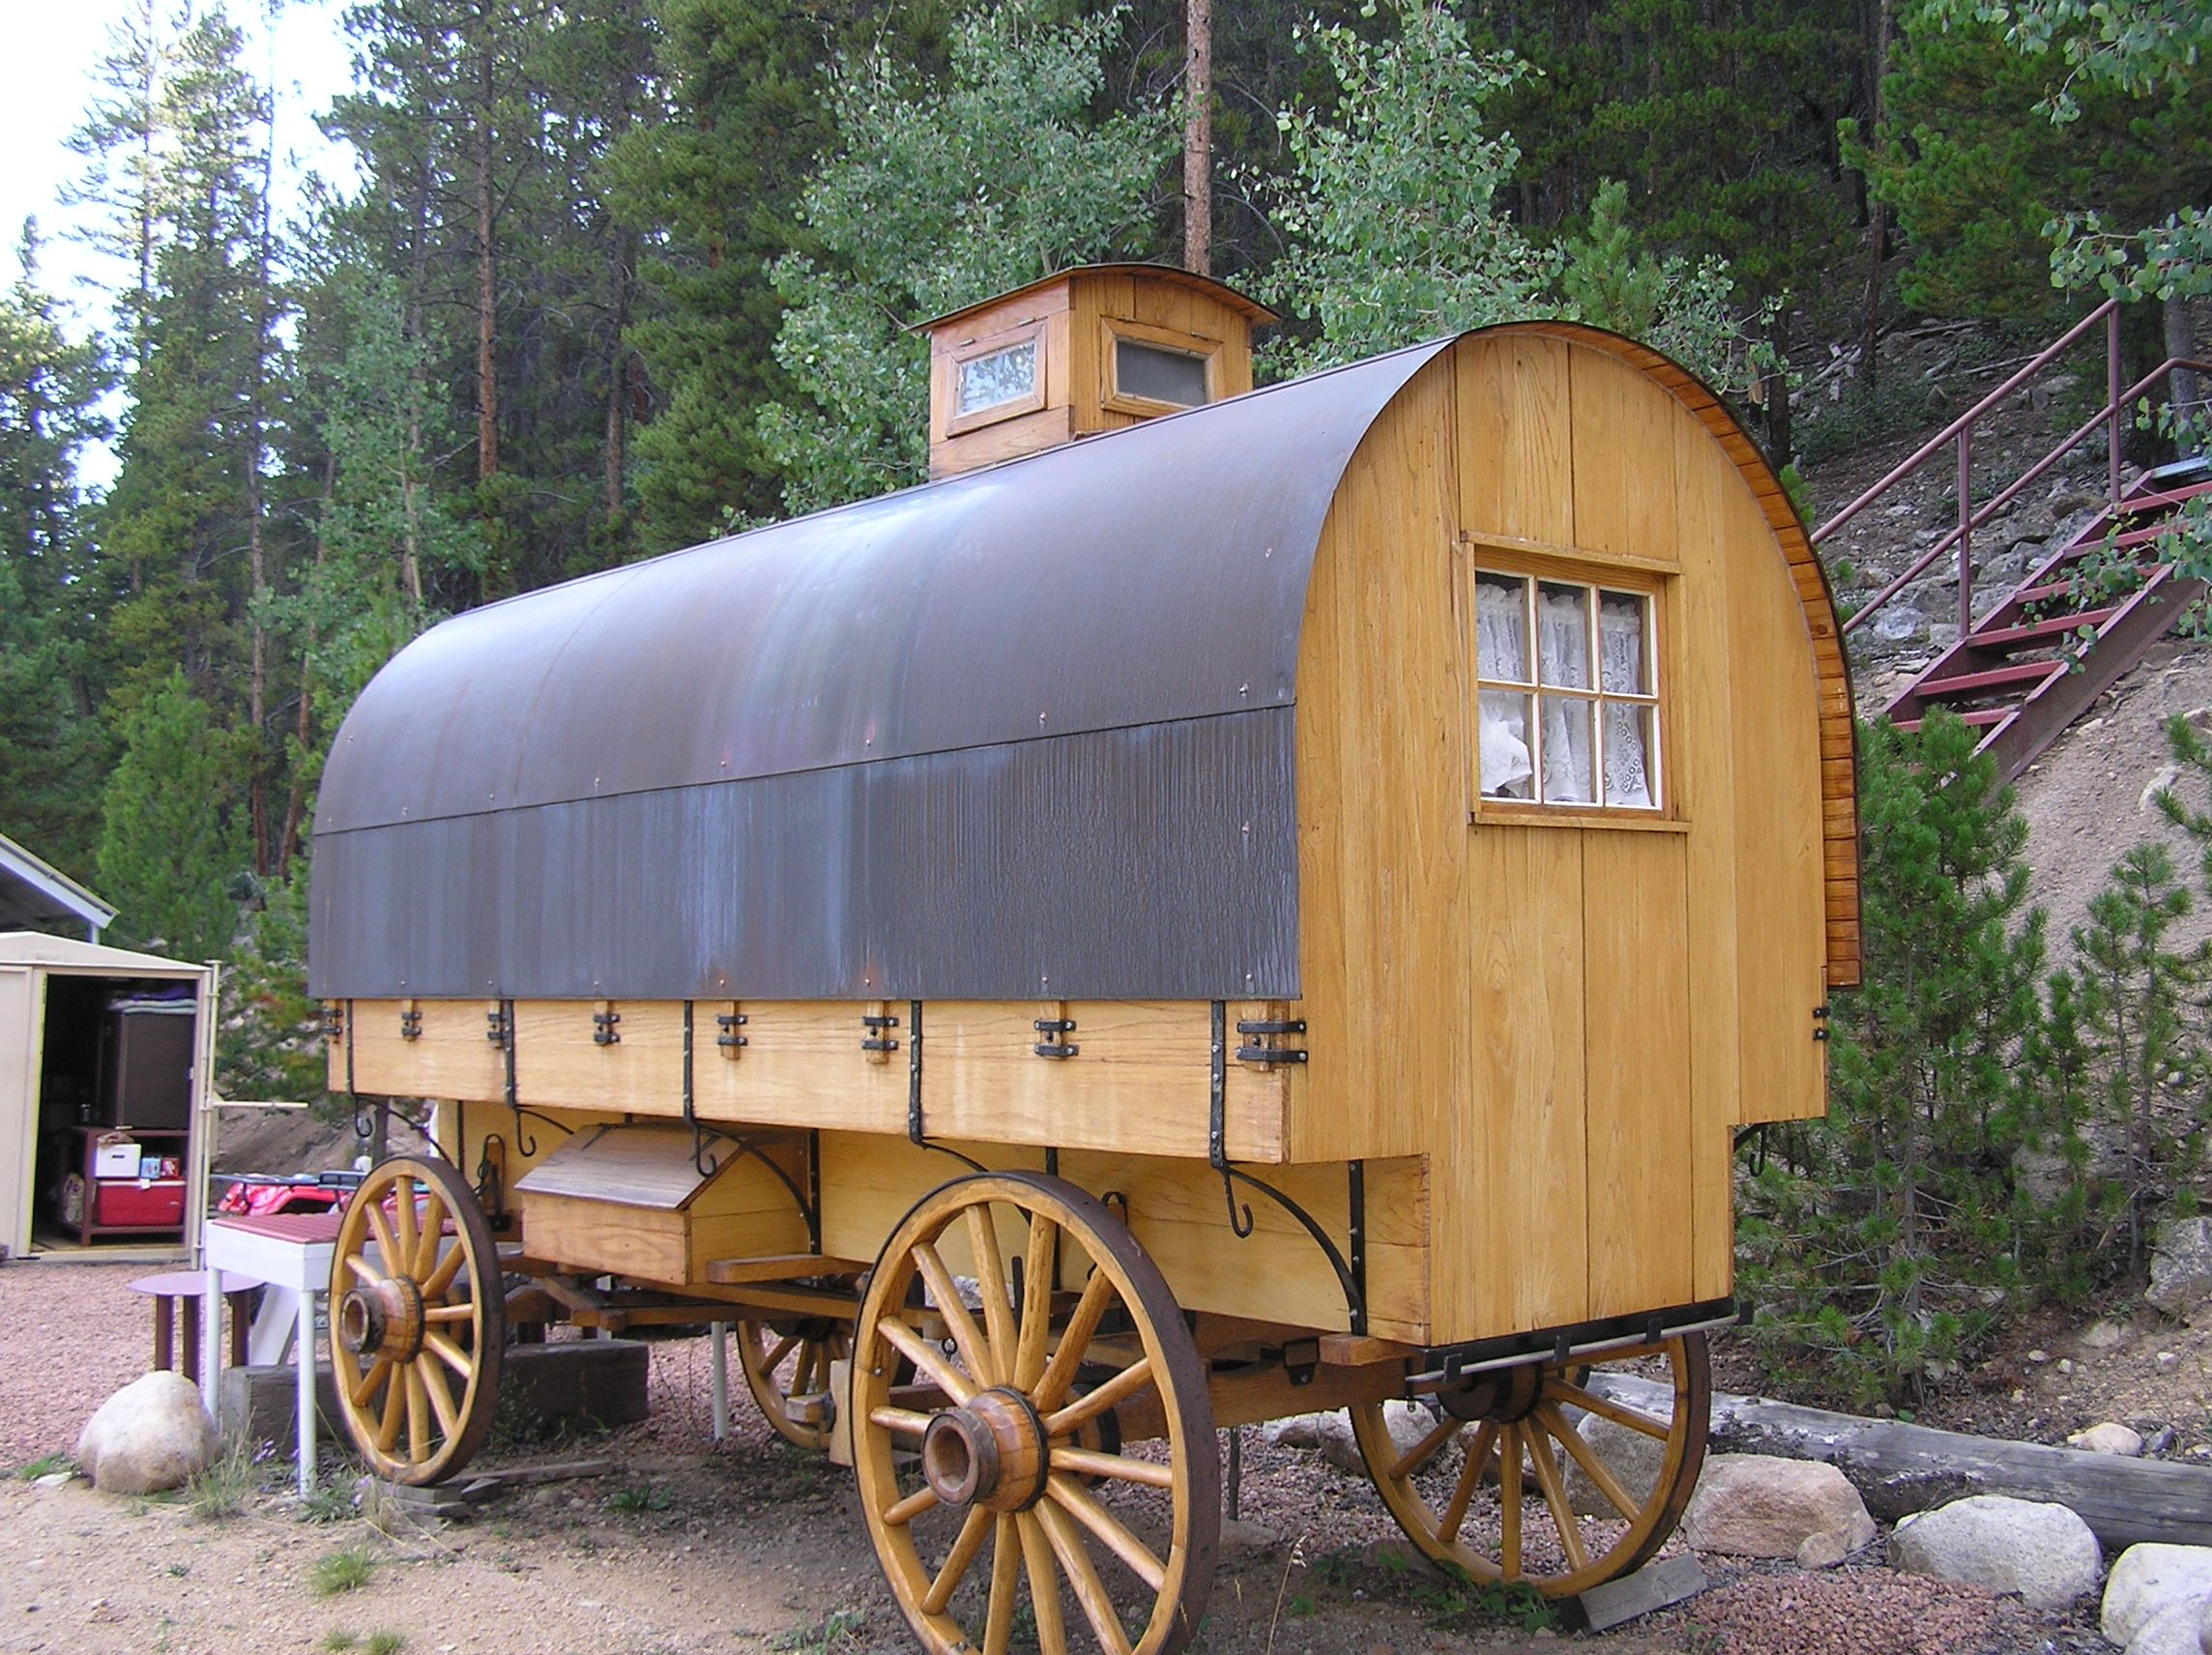 Copper top sheep herders wagon the original travel trailer